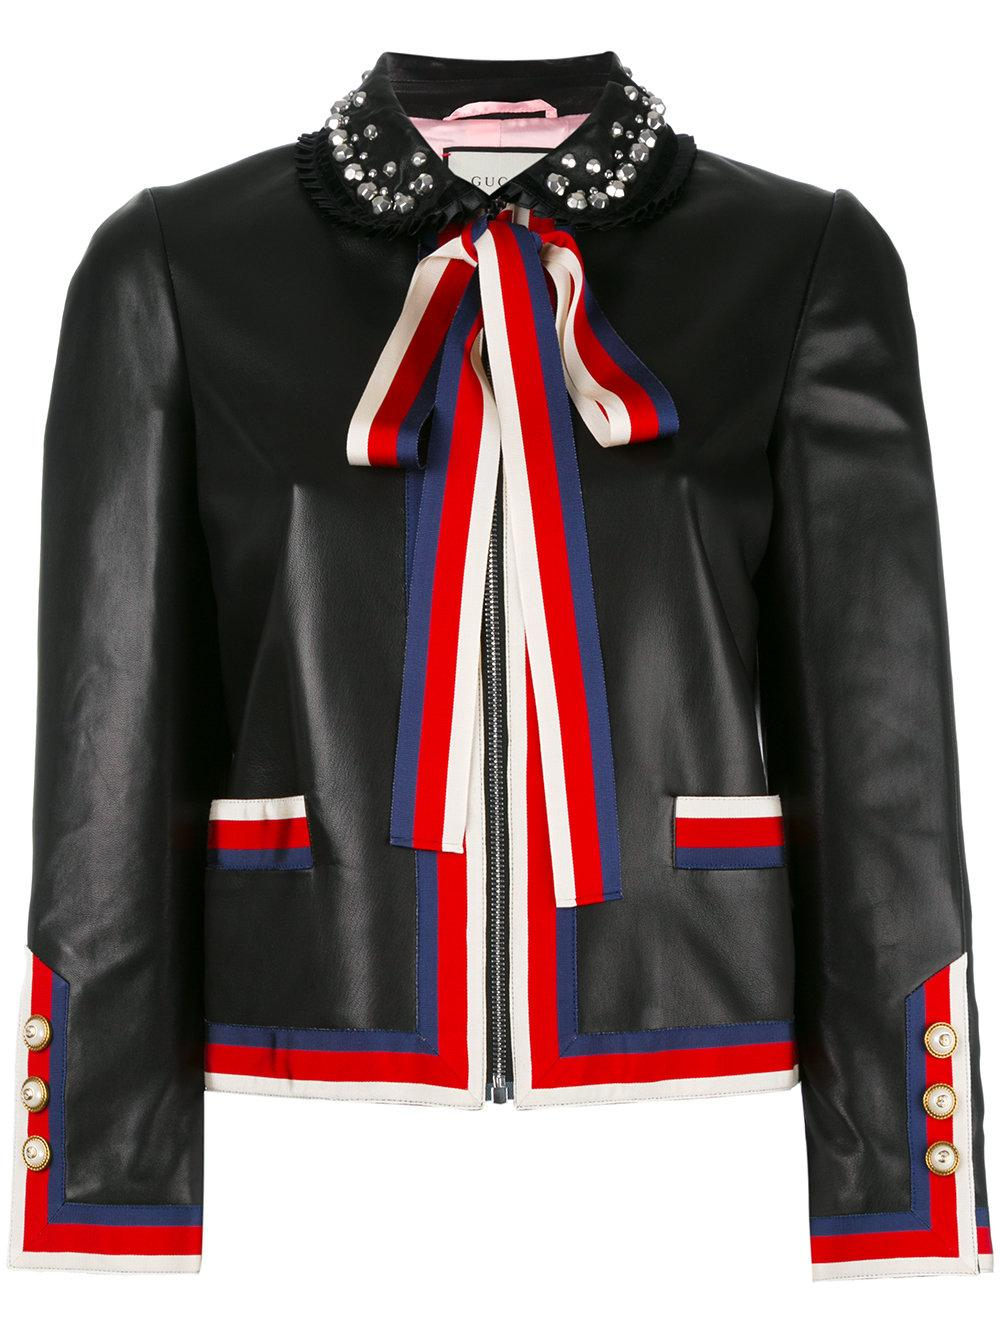 Gucci Embellished Bow Tie Jacket In Black Lyst